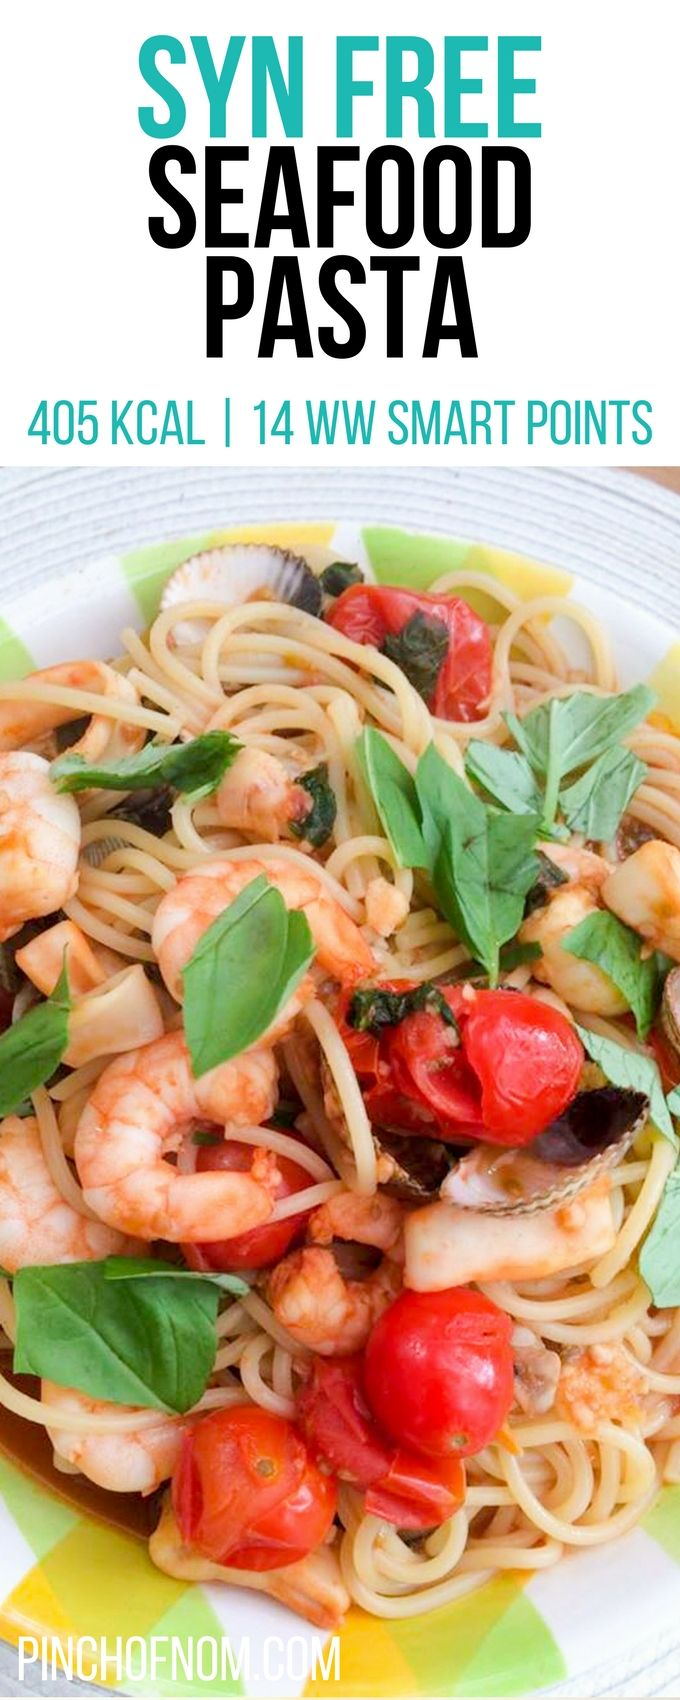 Syn Free Seafood Pasta | Pinch Of Nom Slimming World Recipes    405 kcal | Syn Free | 14 Weight Watchers Smart Points